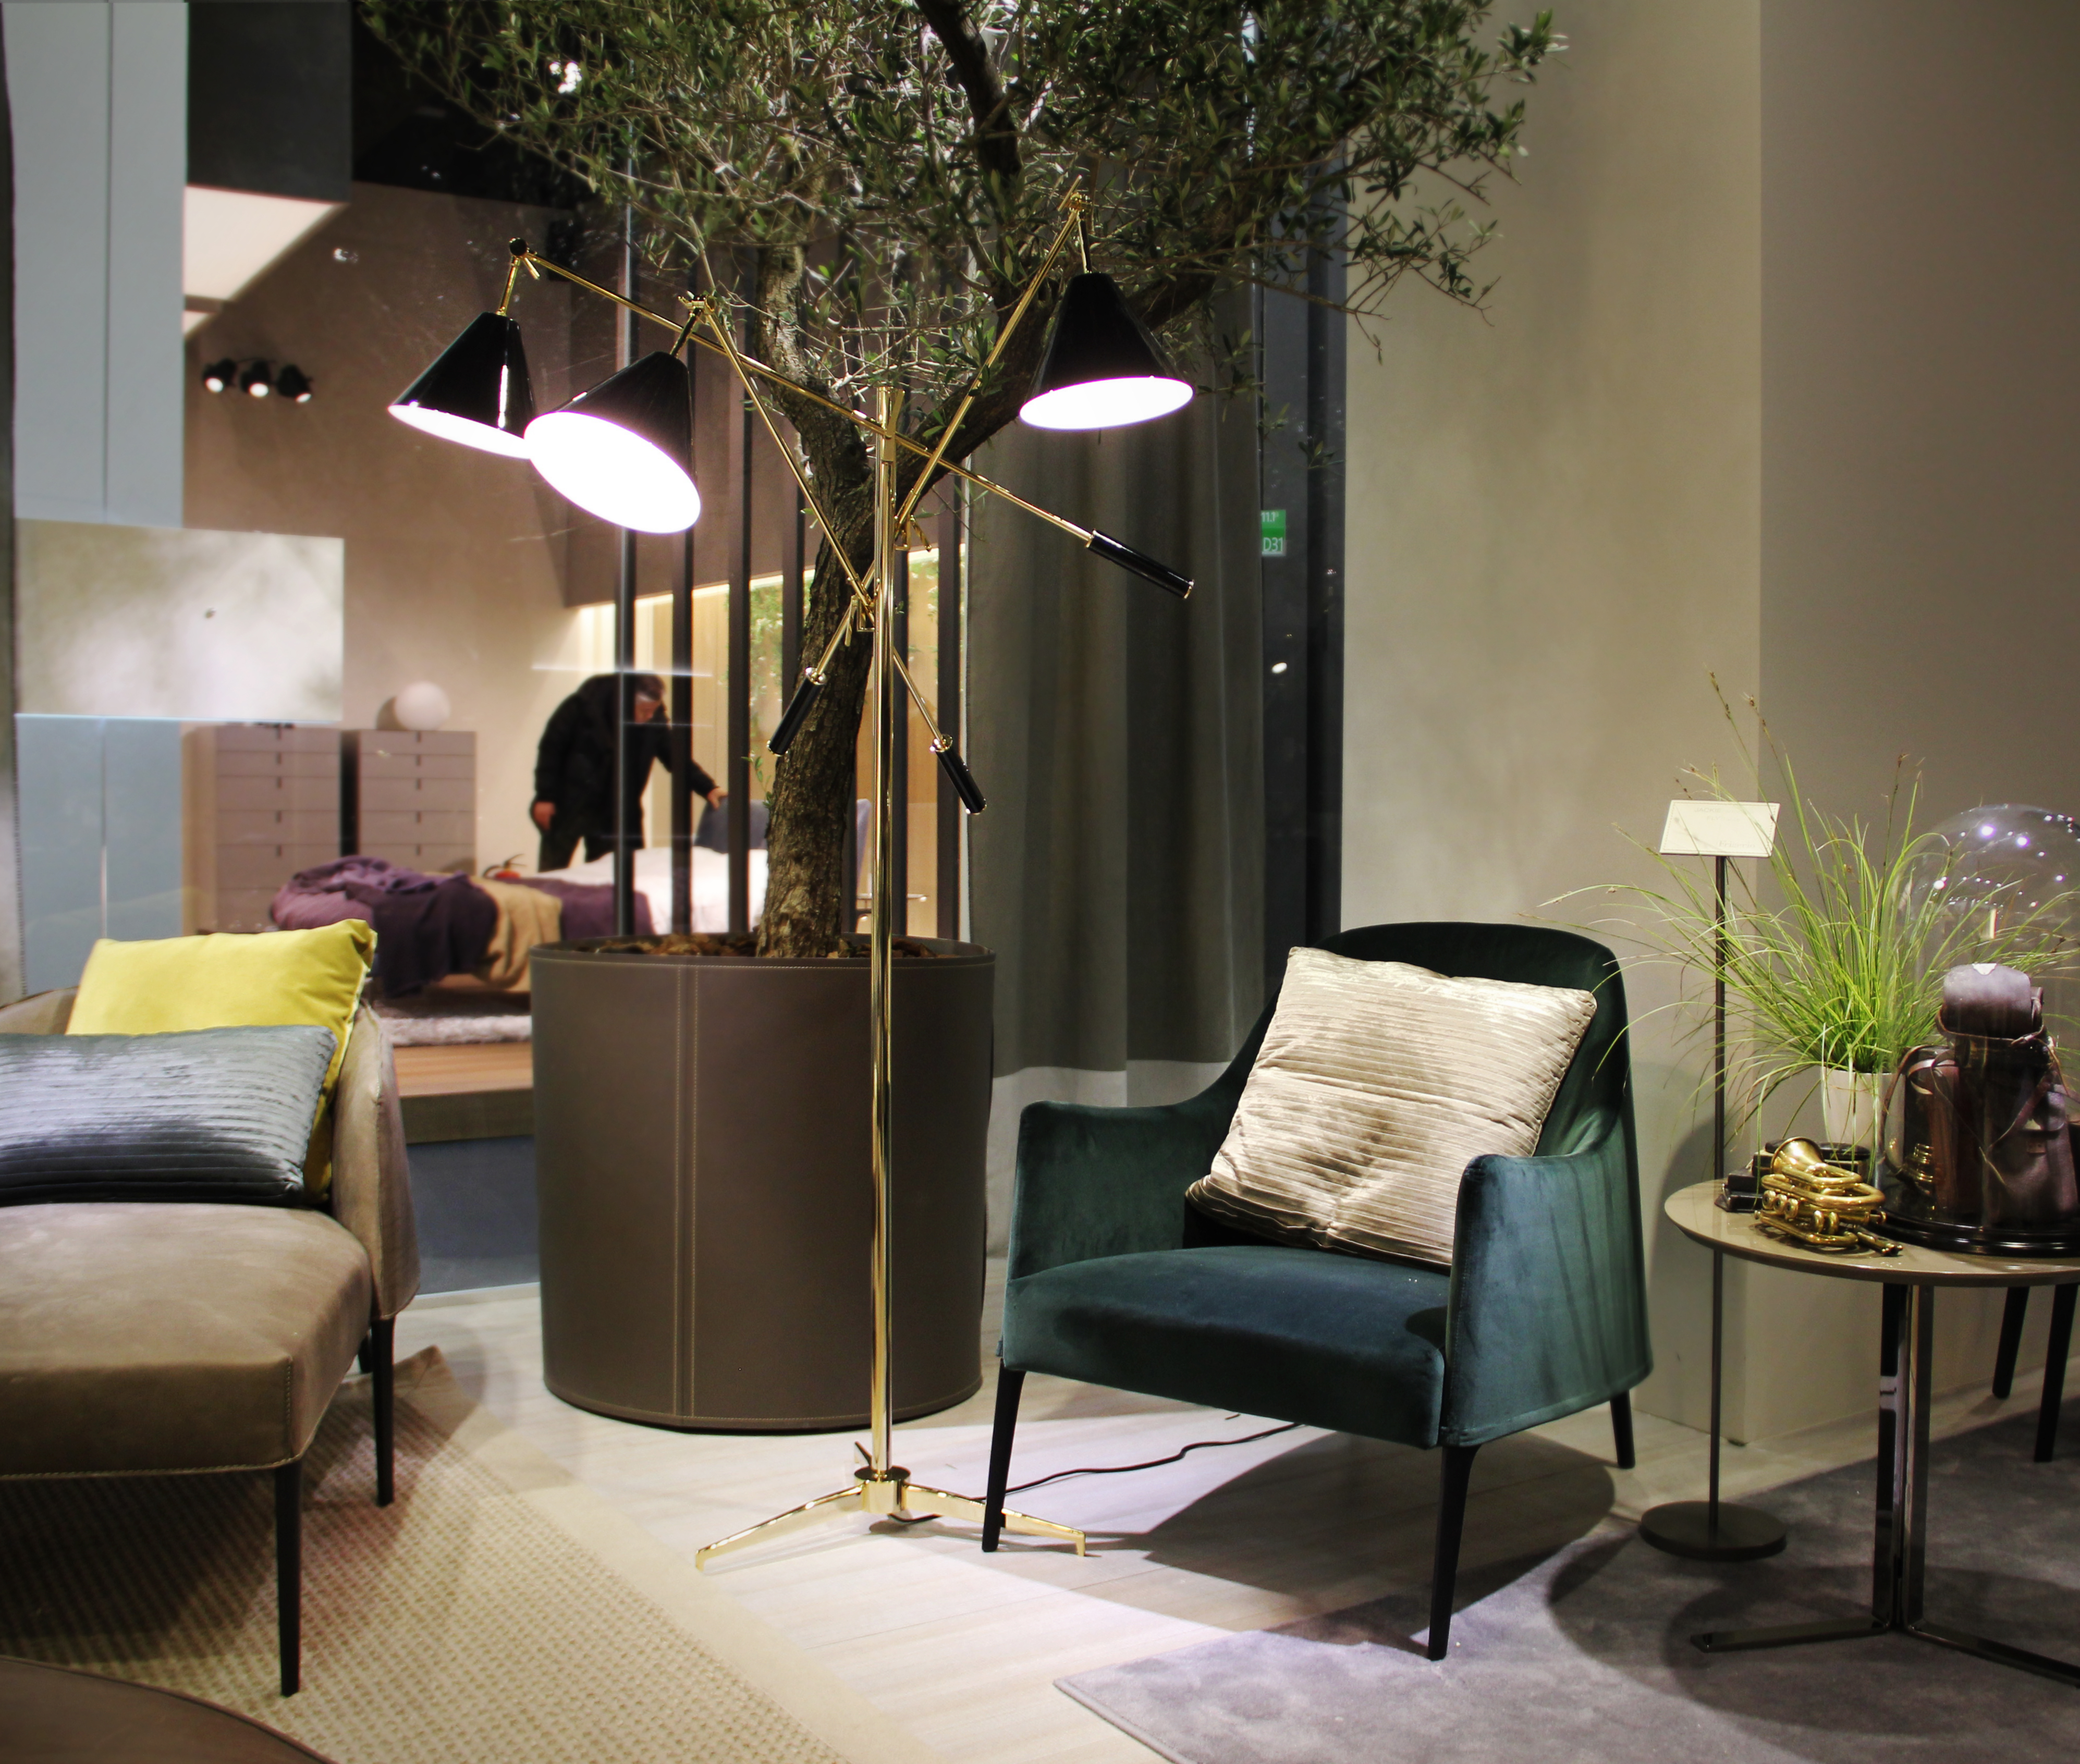 contract floor lamps Contract Floor Lamps At Equip Hotel 2018 You Must See Now Contract Floor Lamps At Equip Hotel 2018 6